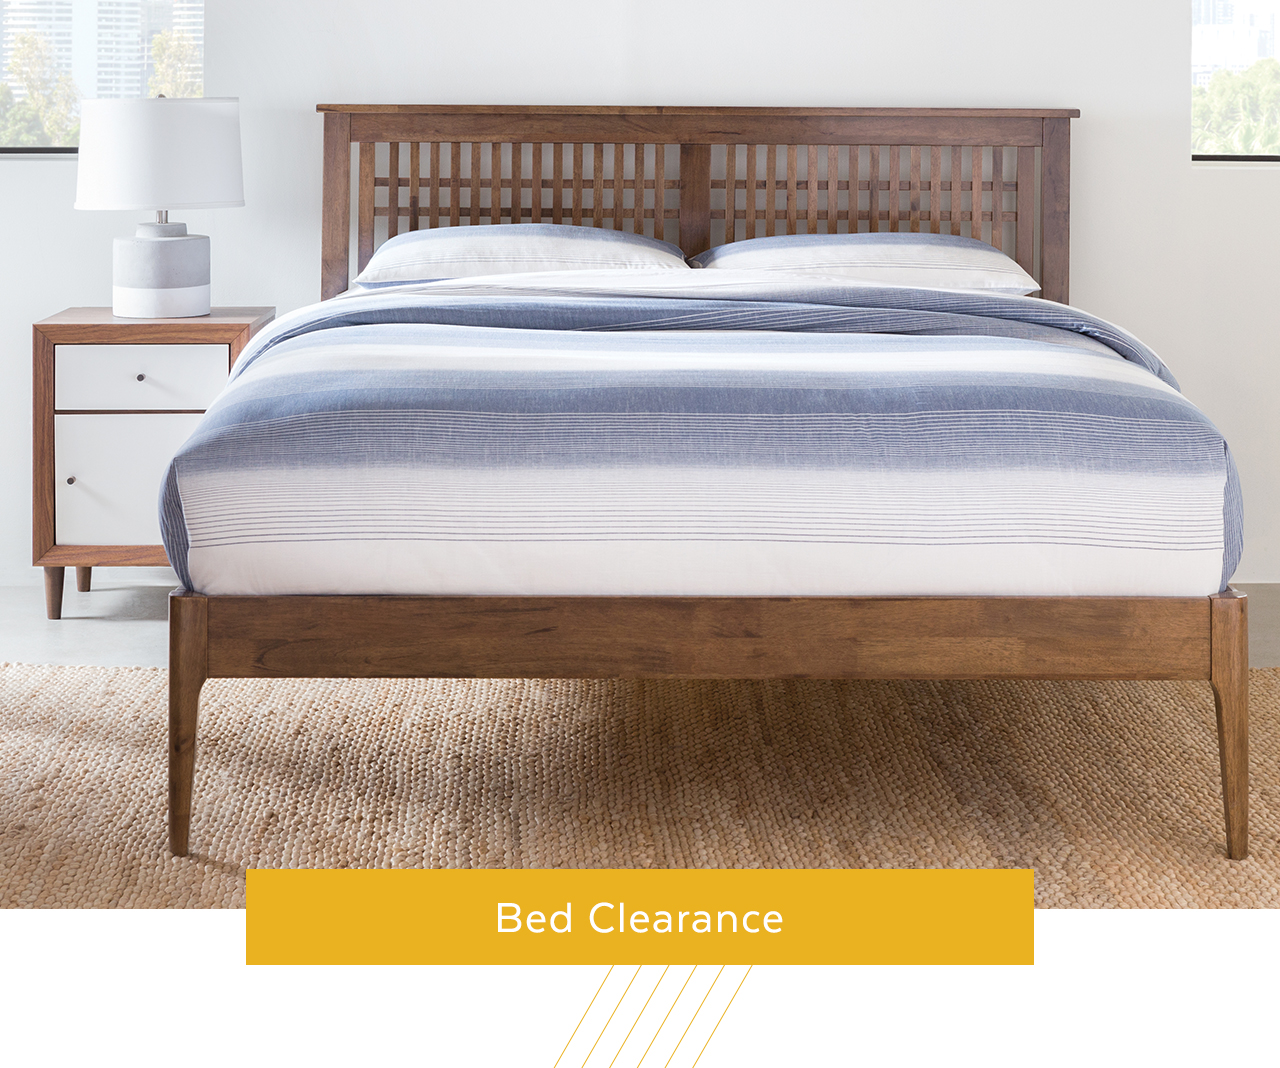 Bed Clearance